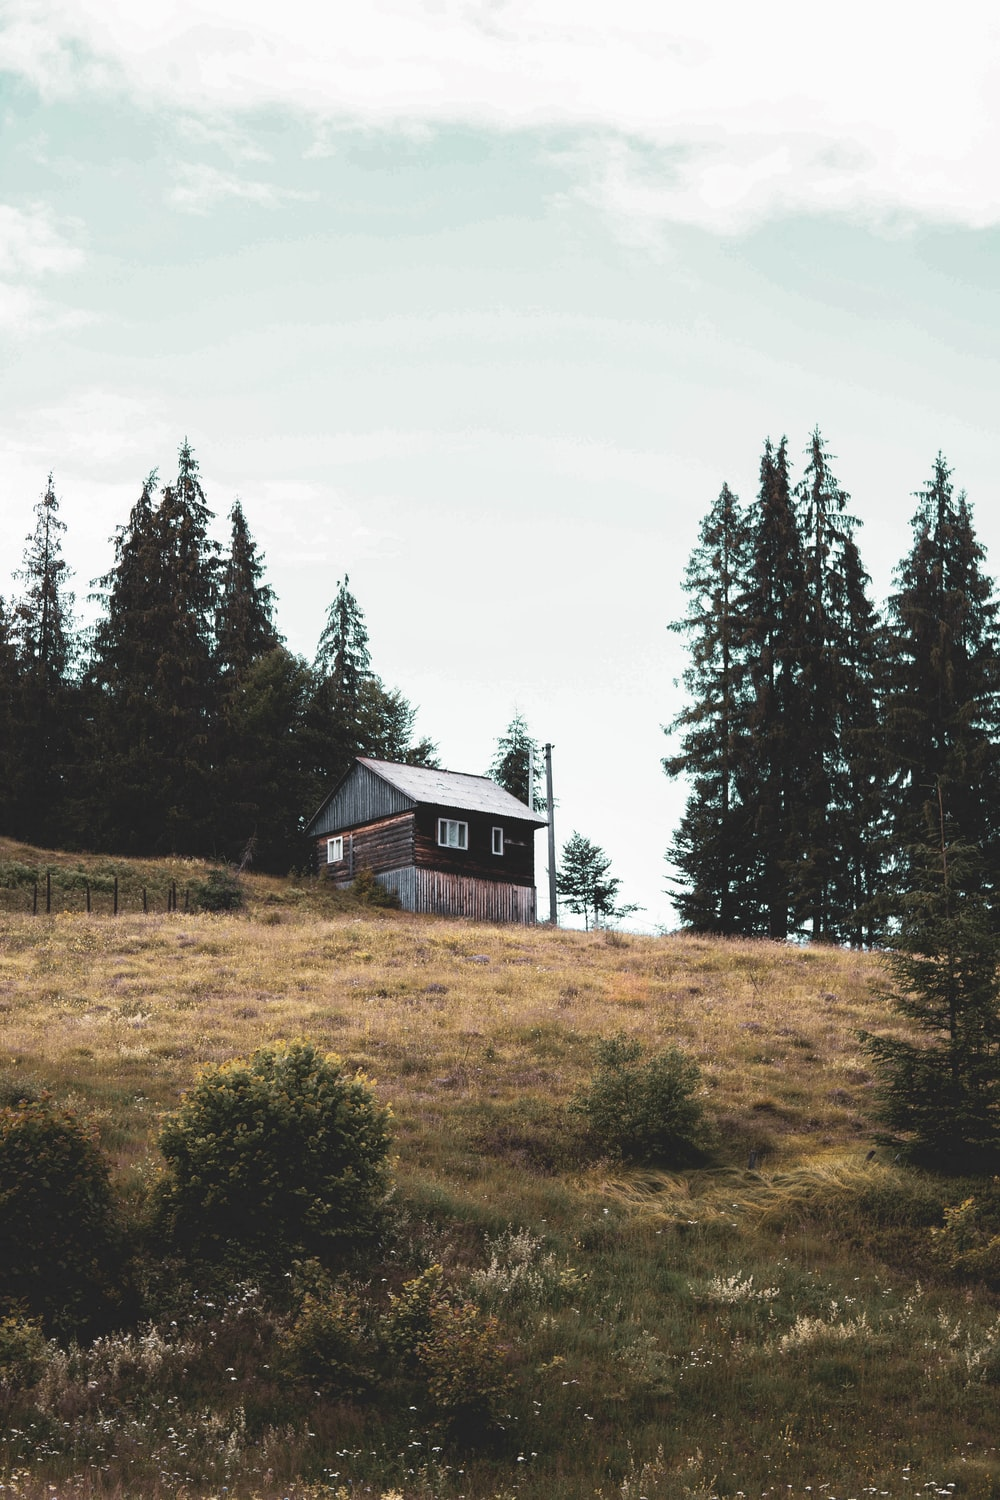 brown wooden house near green trees under white sky during daytime